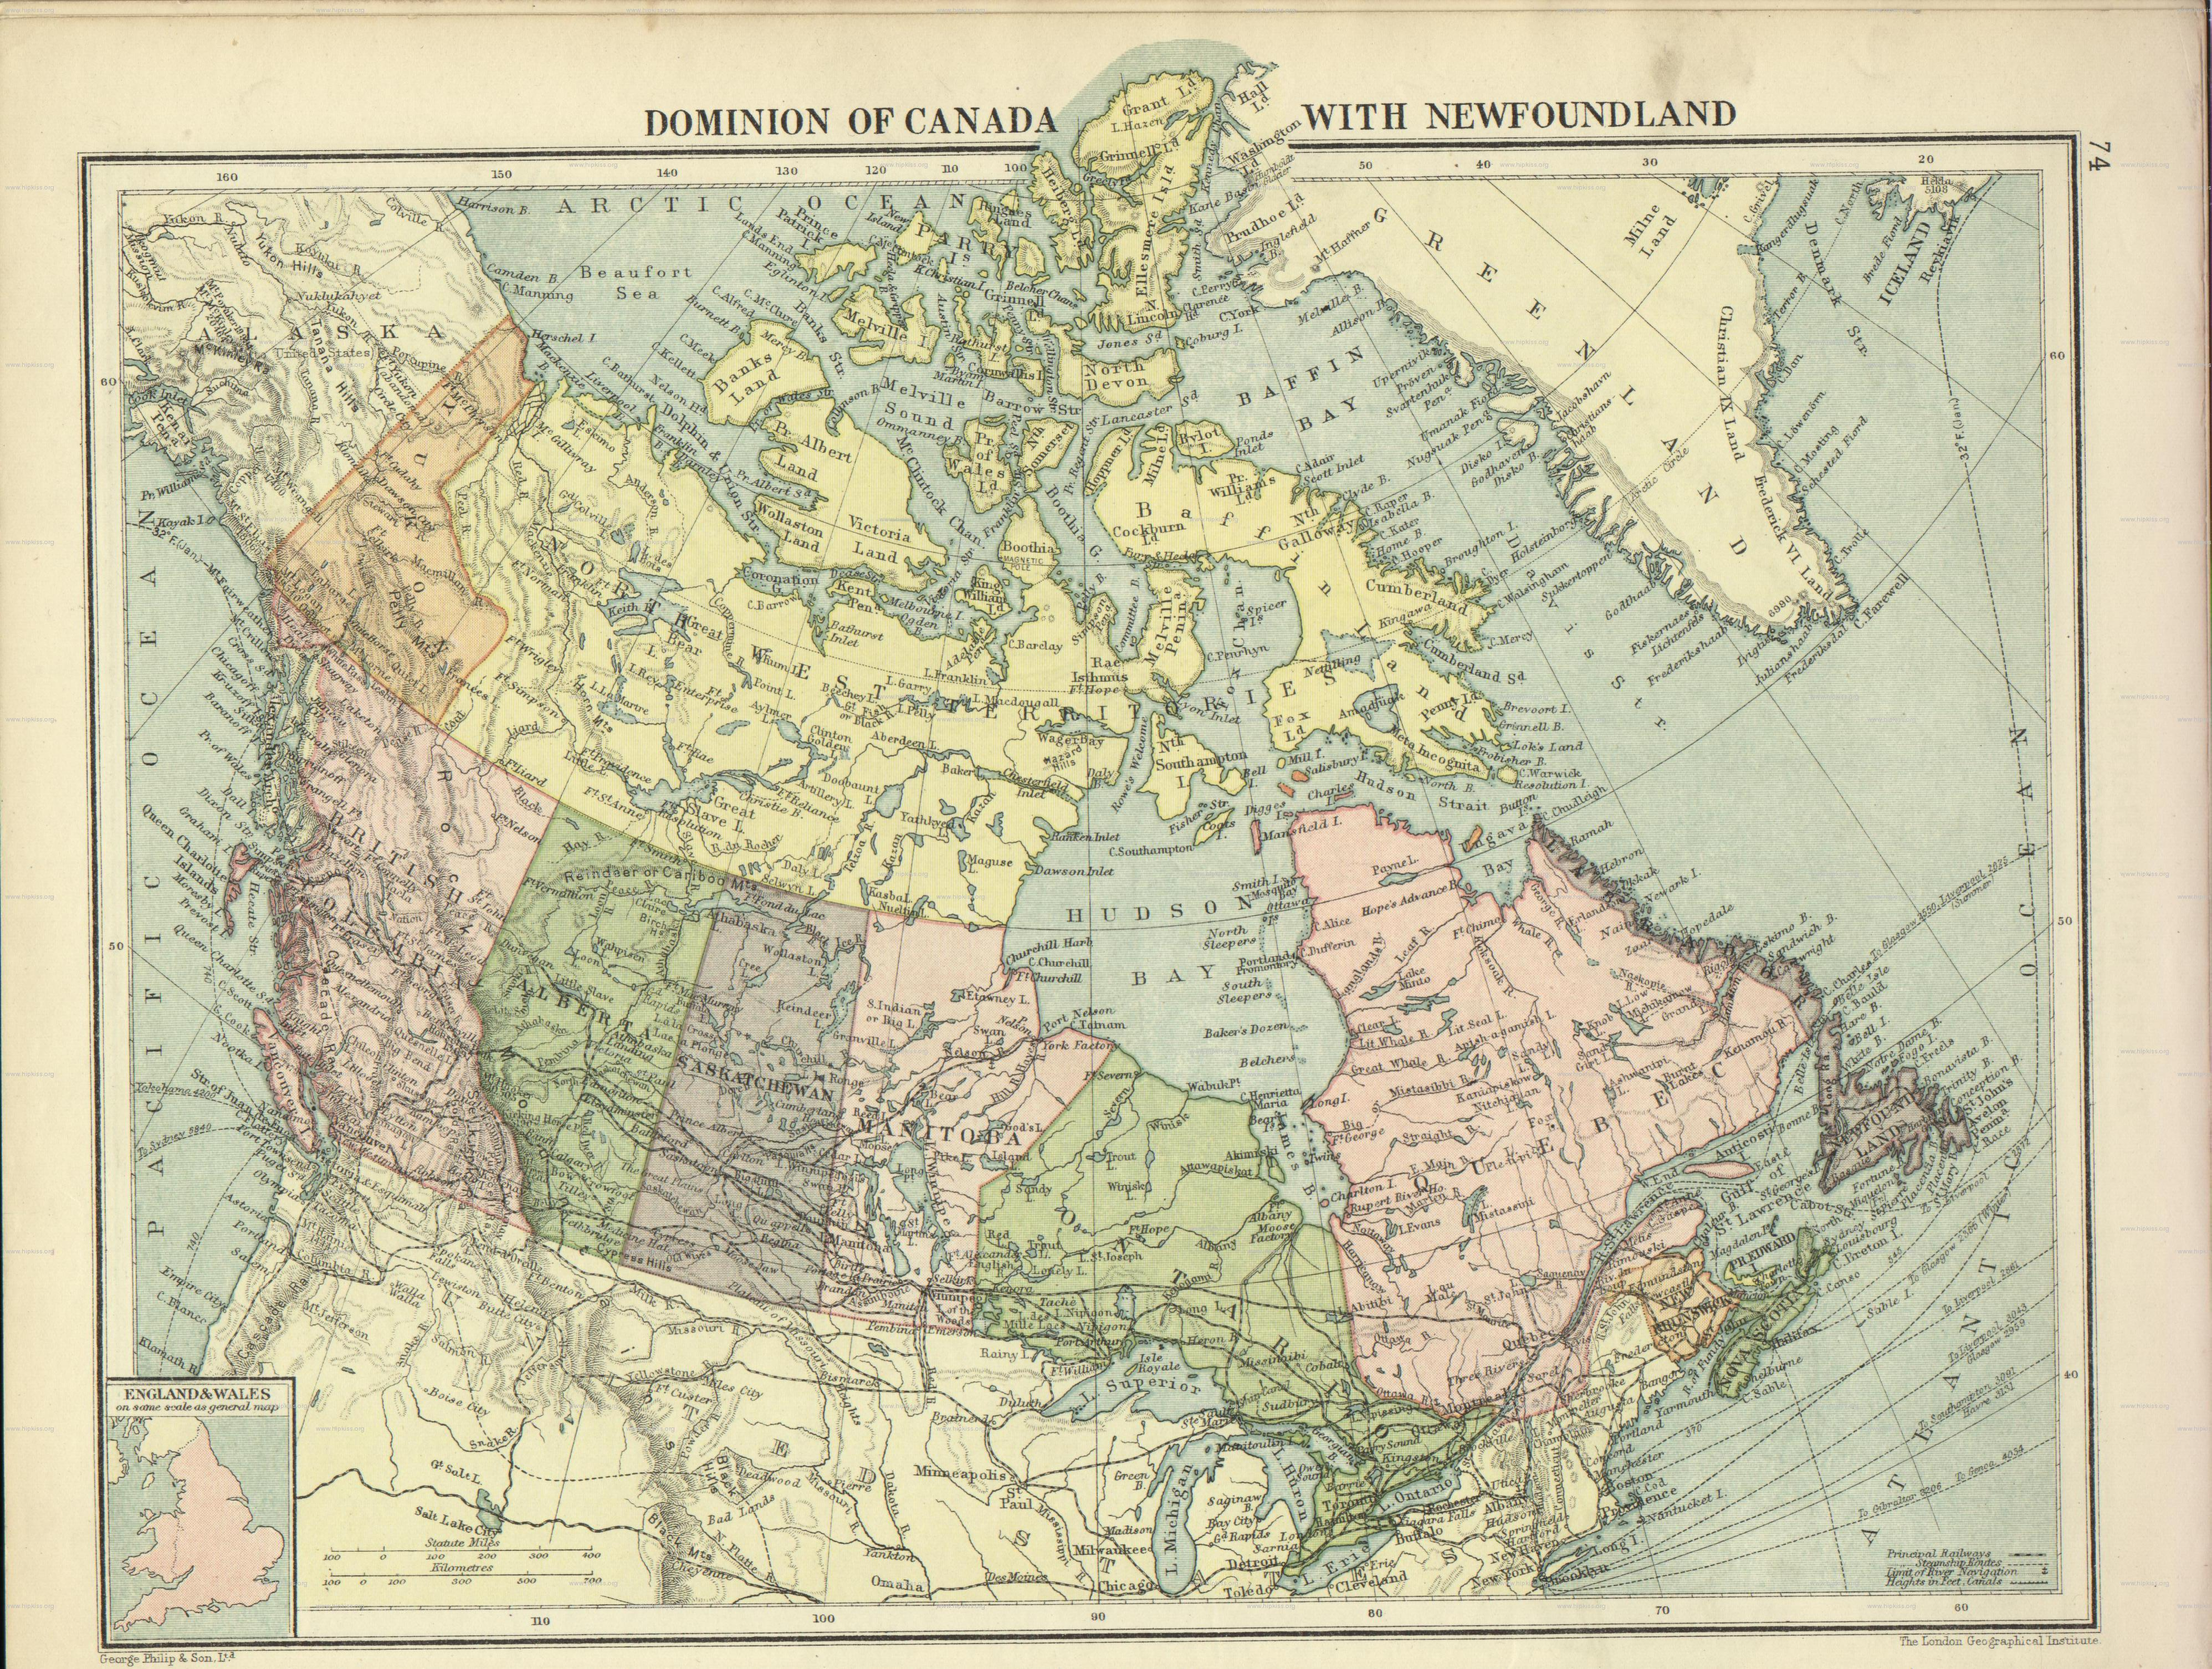 Old Maps and Their Hidden Stories O Canada